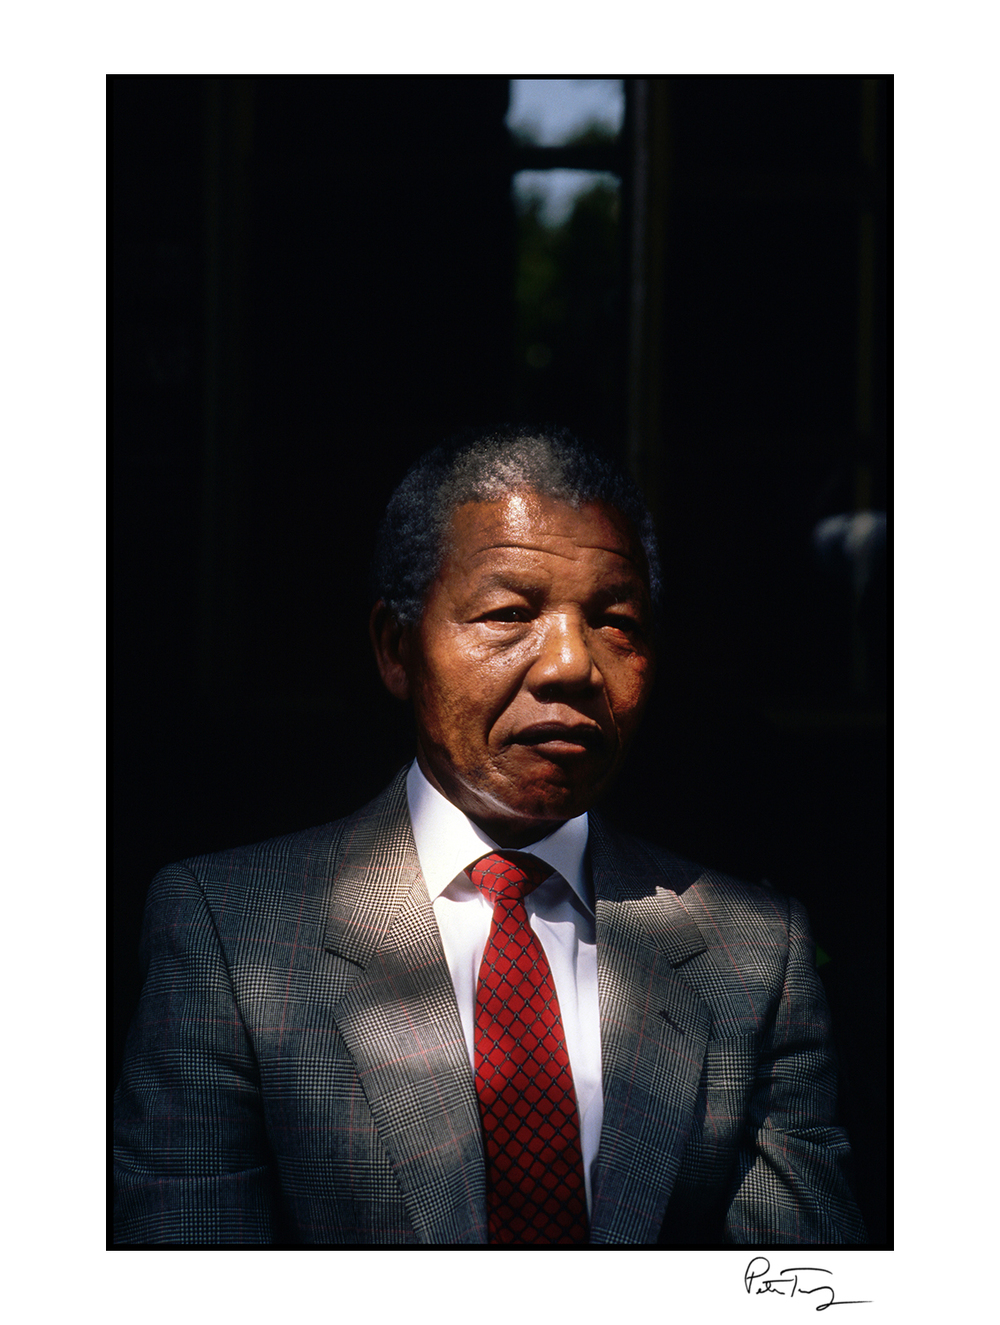 "ID #75・Nelson Mandela, 1990<span class=""print-link""><span class=""separator"">・</span><a onclick='document.getElementsByClassName(""sqs-lightbox-close"")[0].click();'>Thumbnails</a></span>"